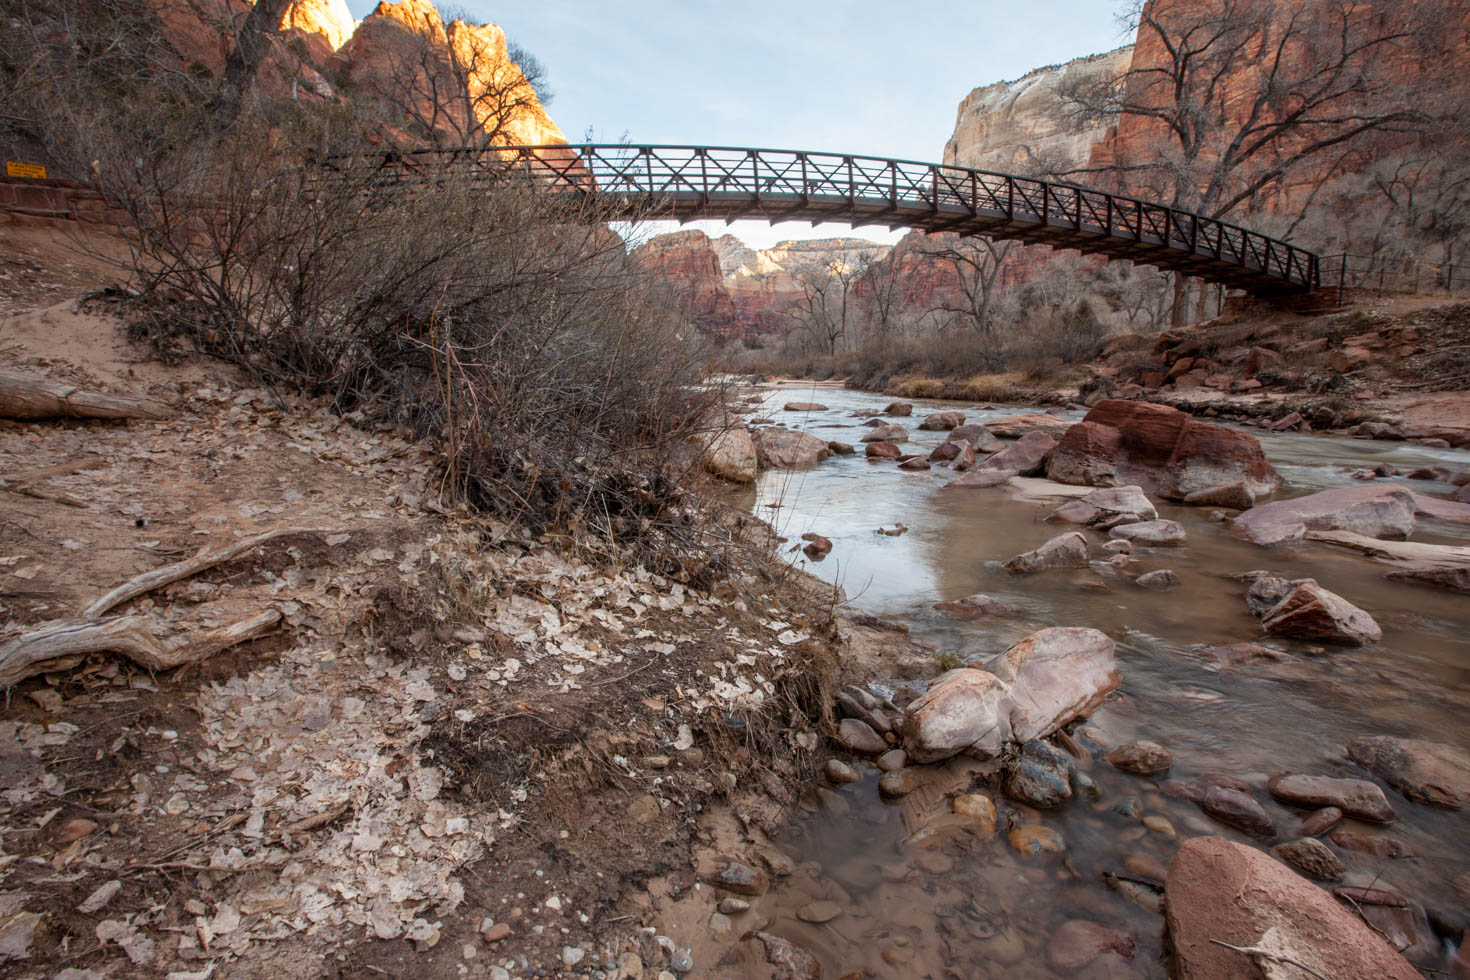 Sunrise at Zion National Park, UT in the Wintertime #vezzaniphotography